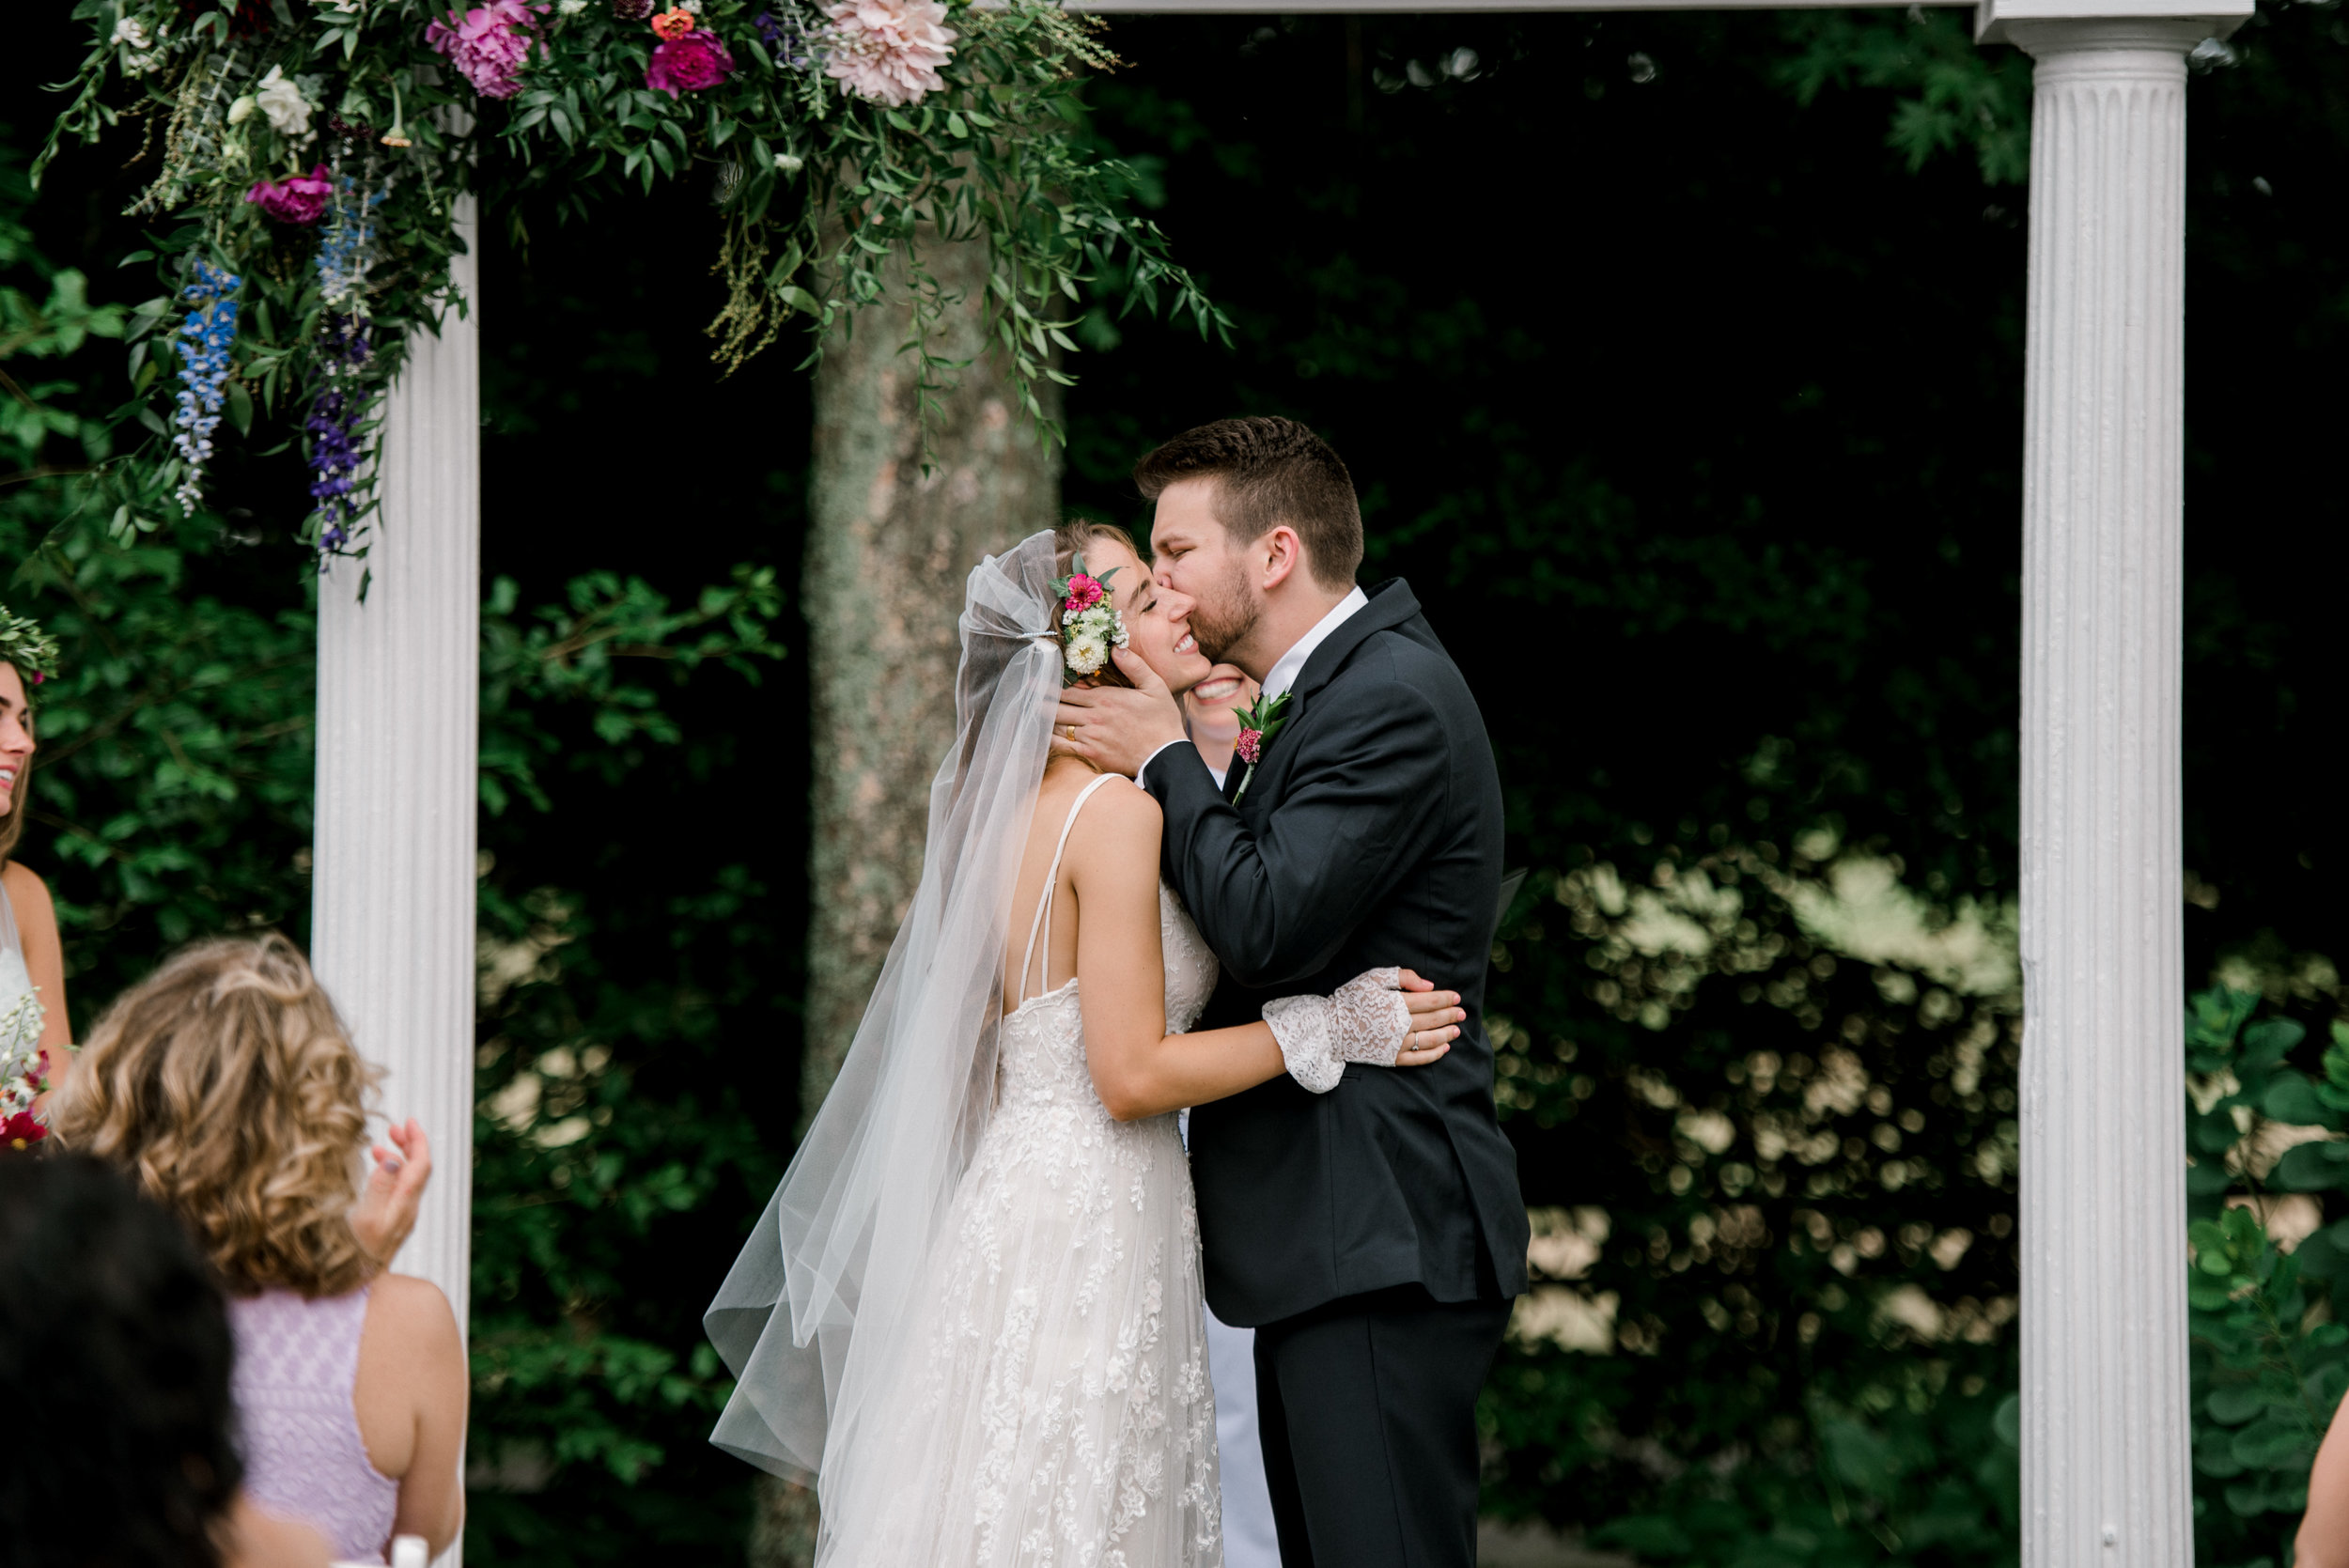 wedding-ceremony-first-kiss-lexington-kentucky-wedding-photographer